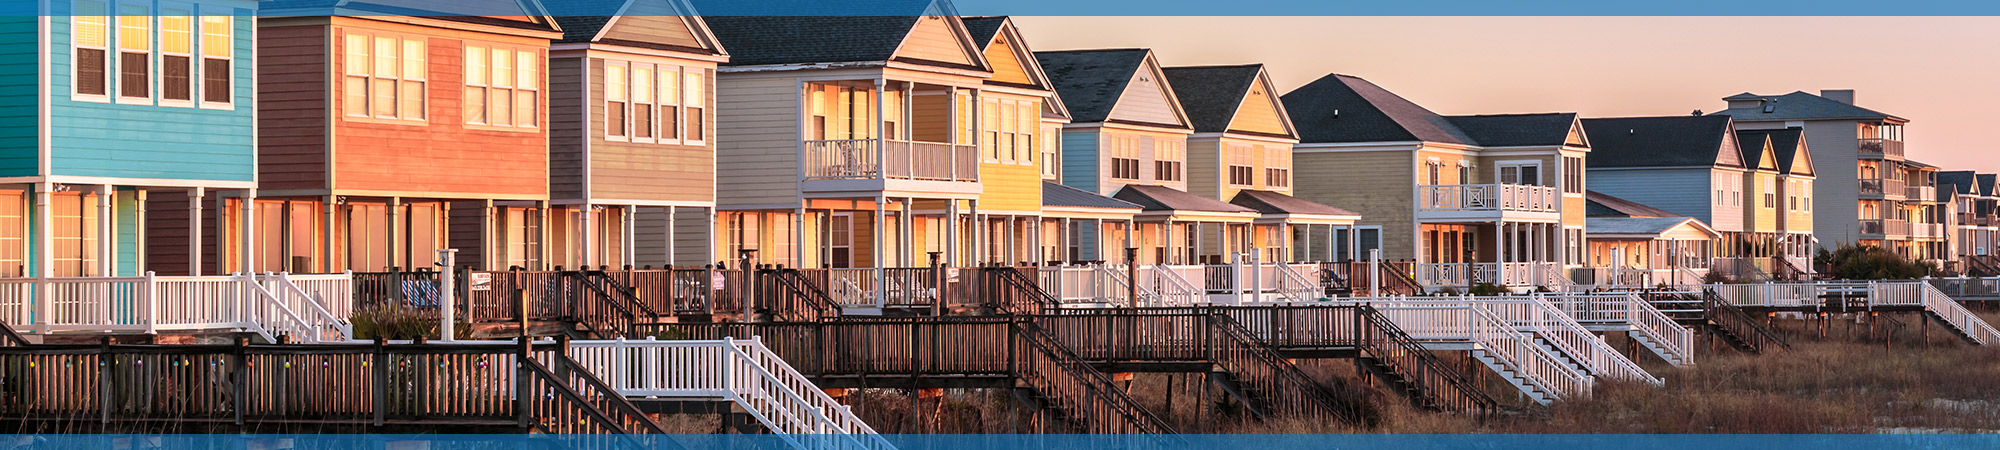 Myrtle Beach Area House & Condo Rentals